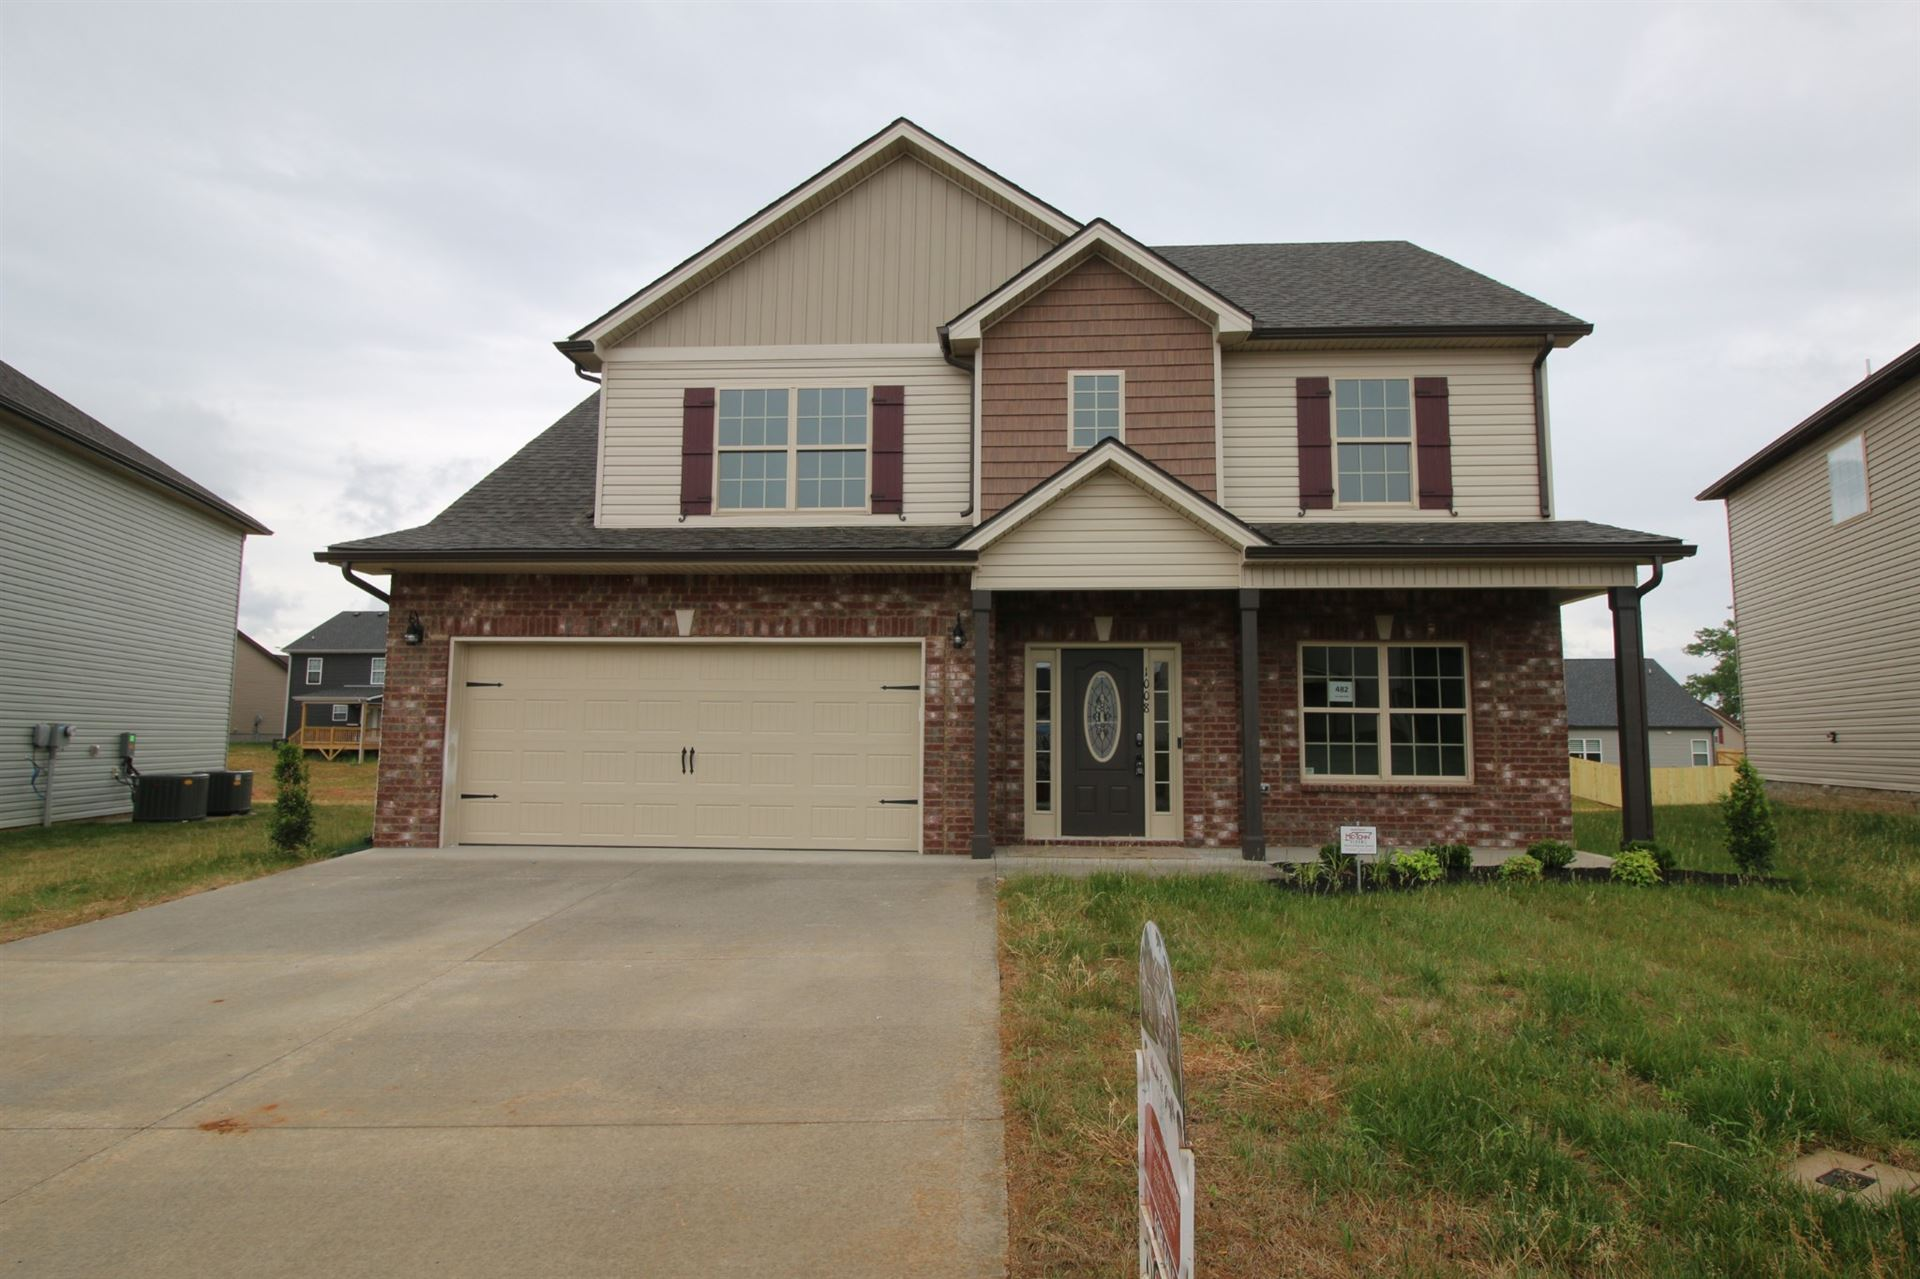 482 Autumn Creek, Clarksville, TN 37042 - MLS#: 2219243